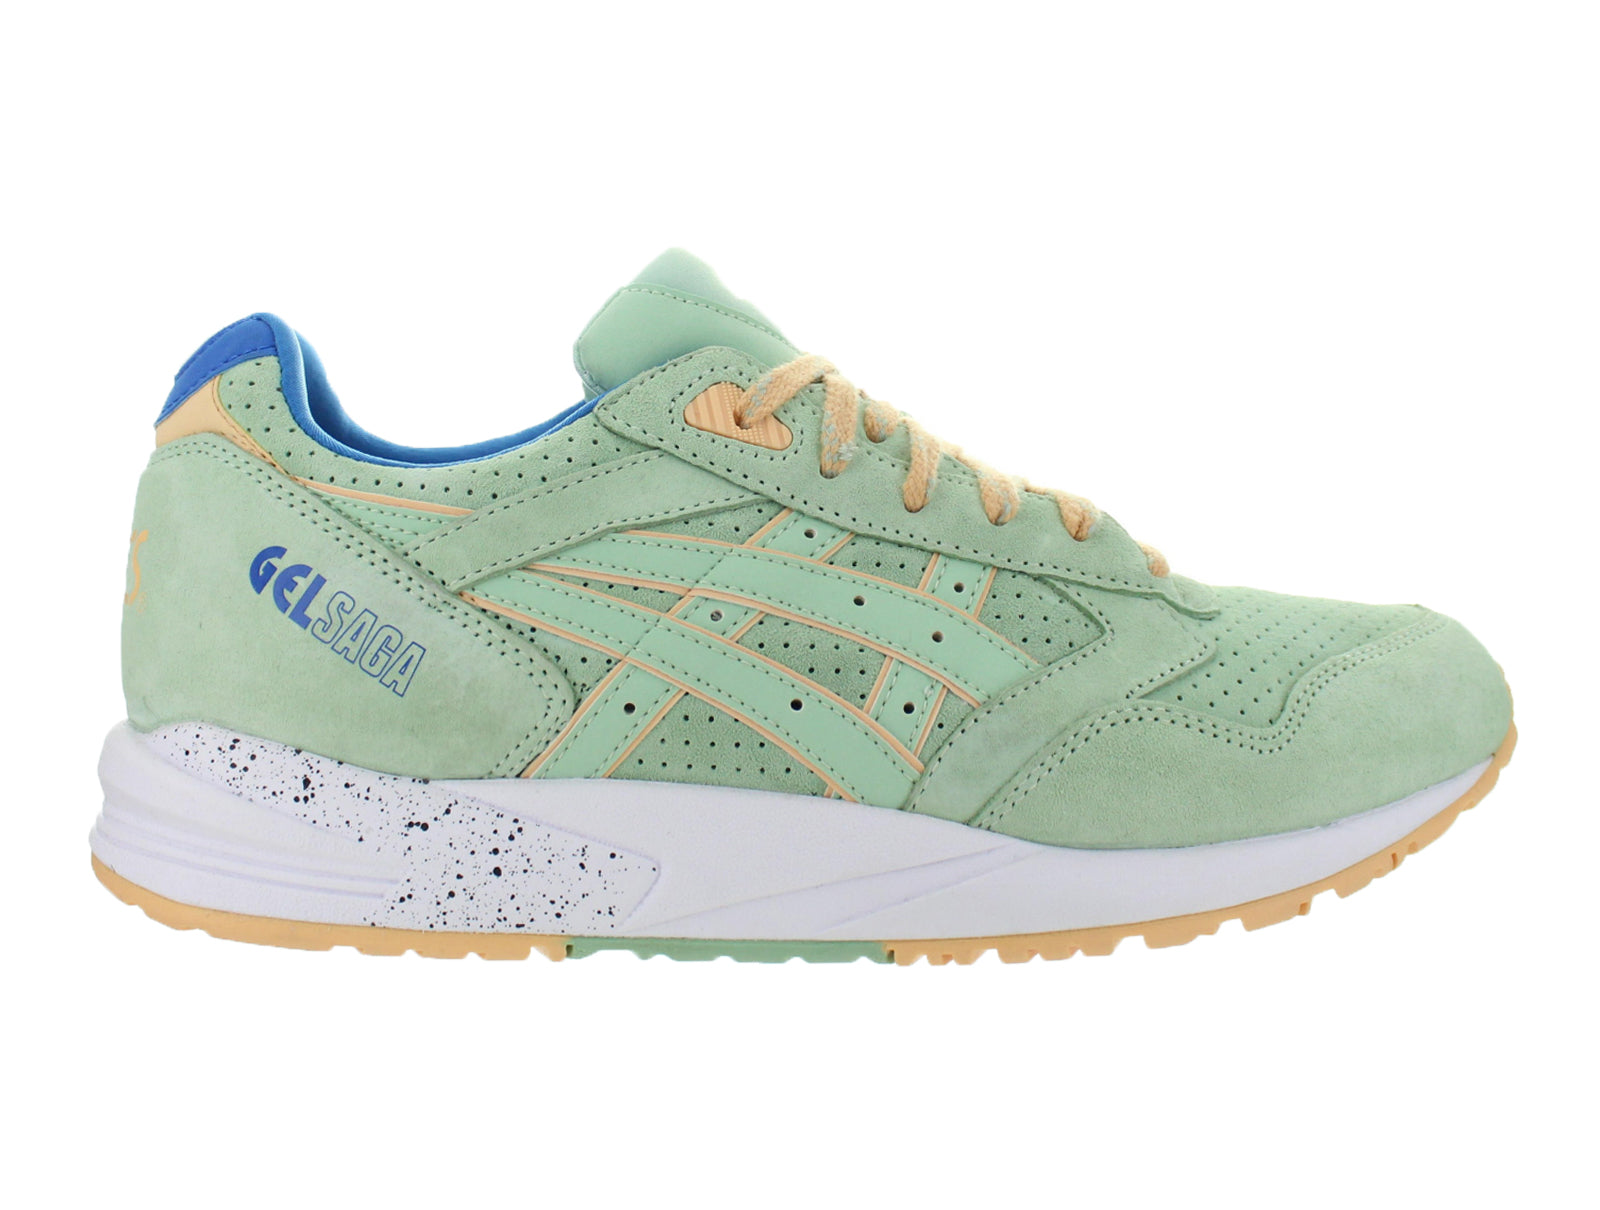 Mens Asics Gel Saga Easter Pack Smoke Green White Blue H6A0L-7474